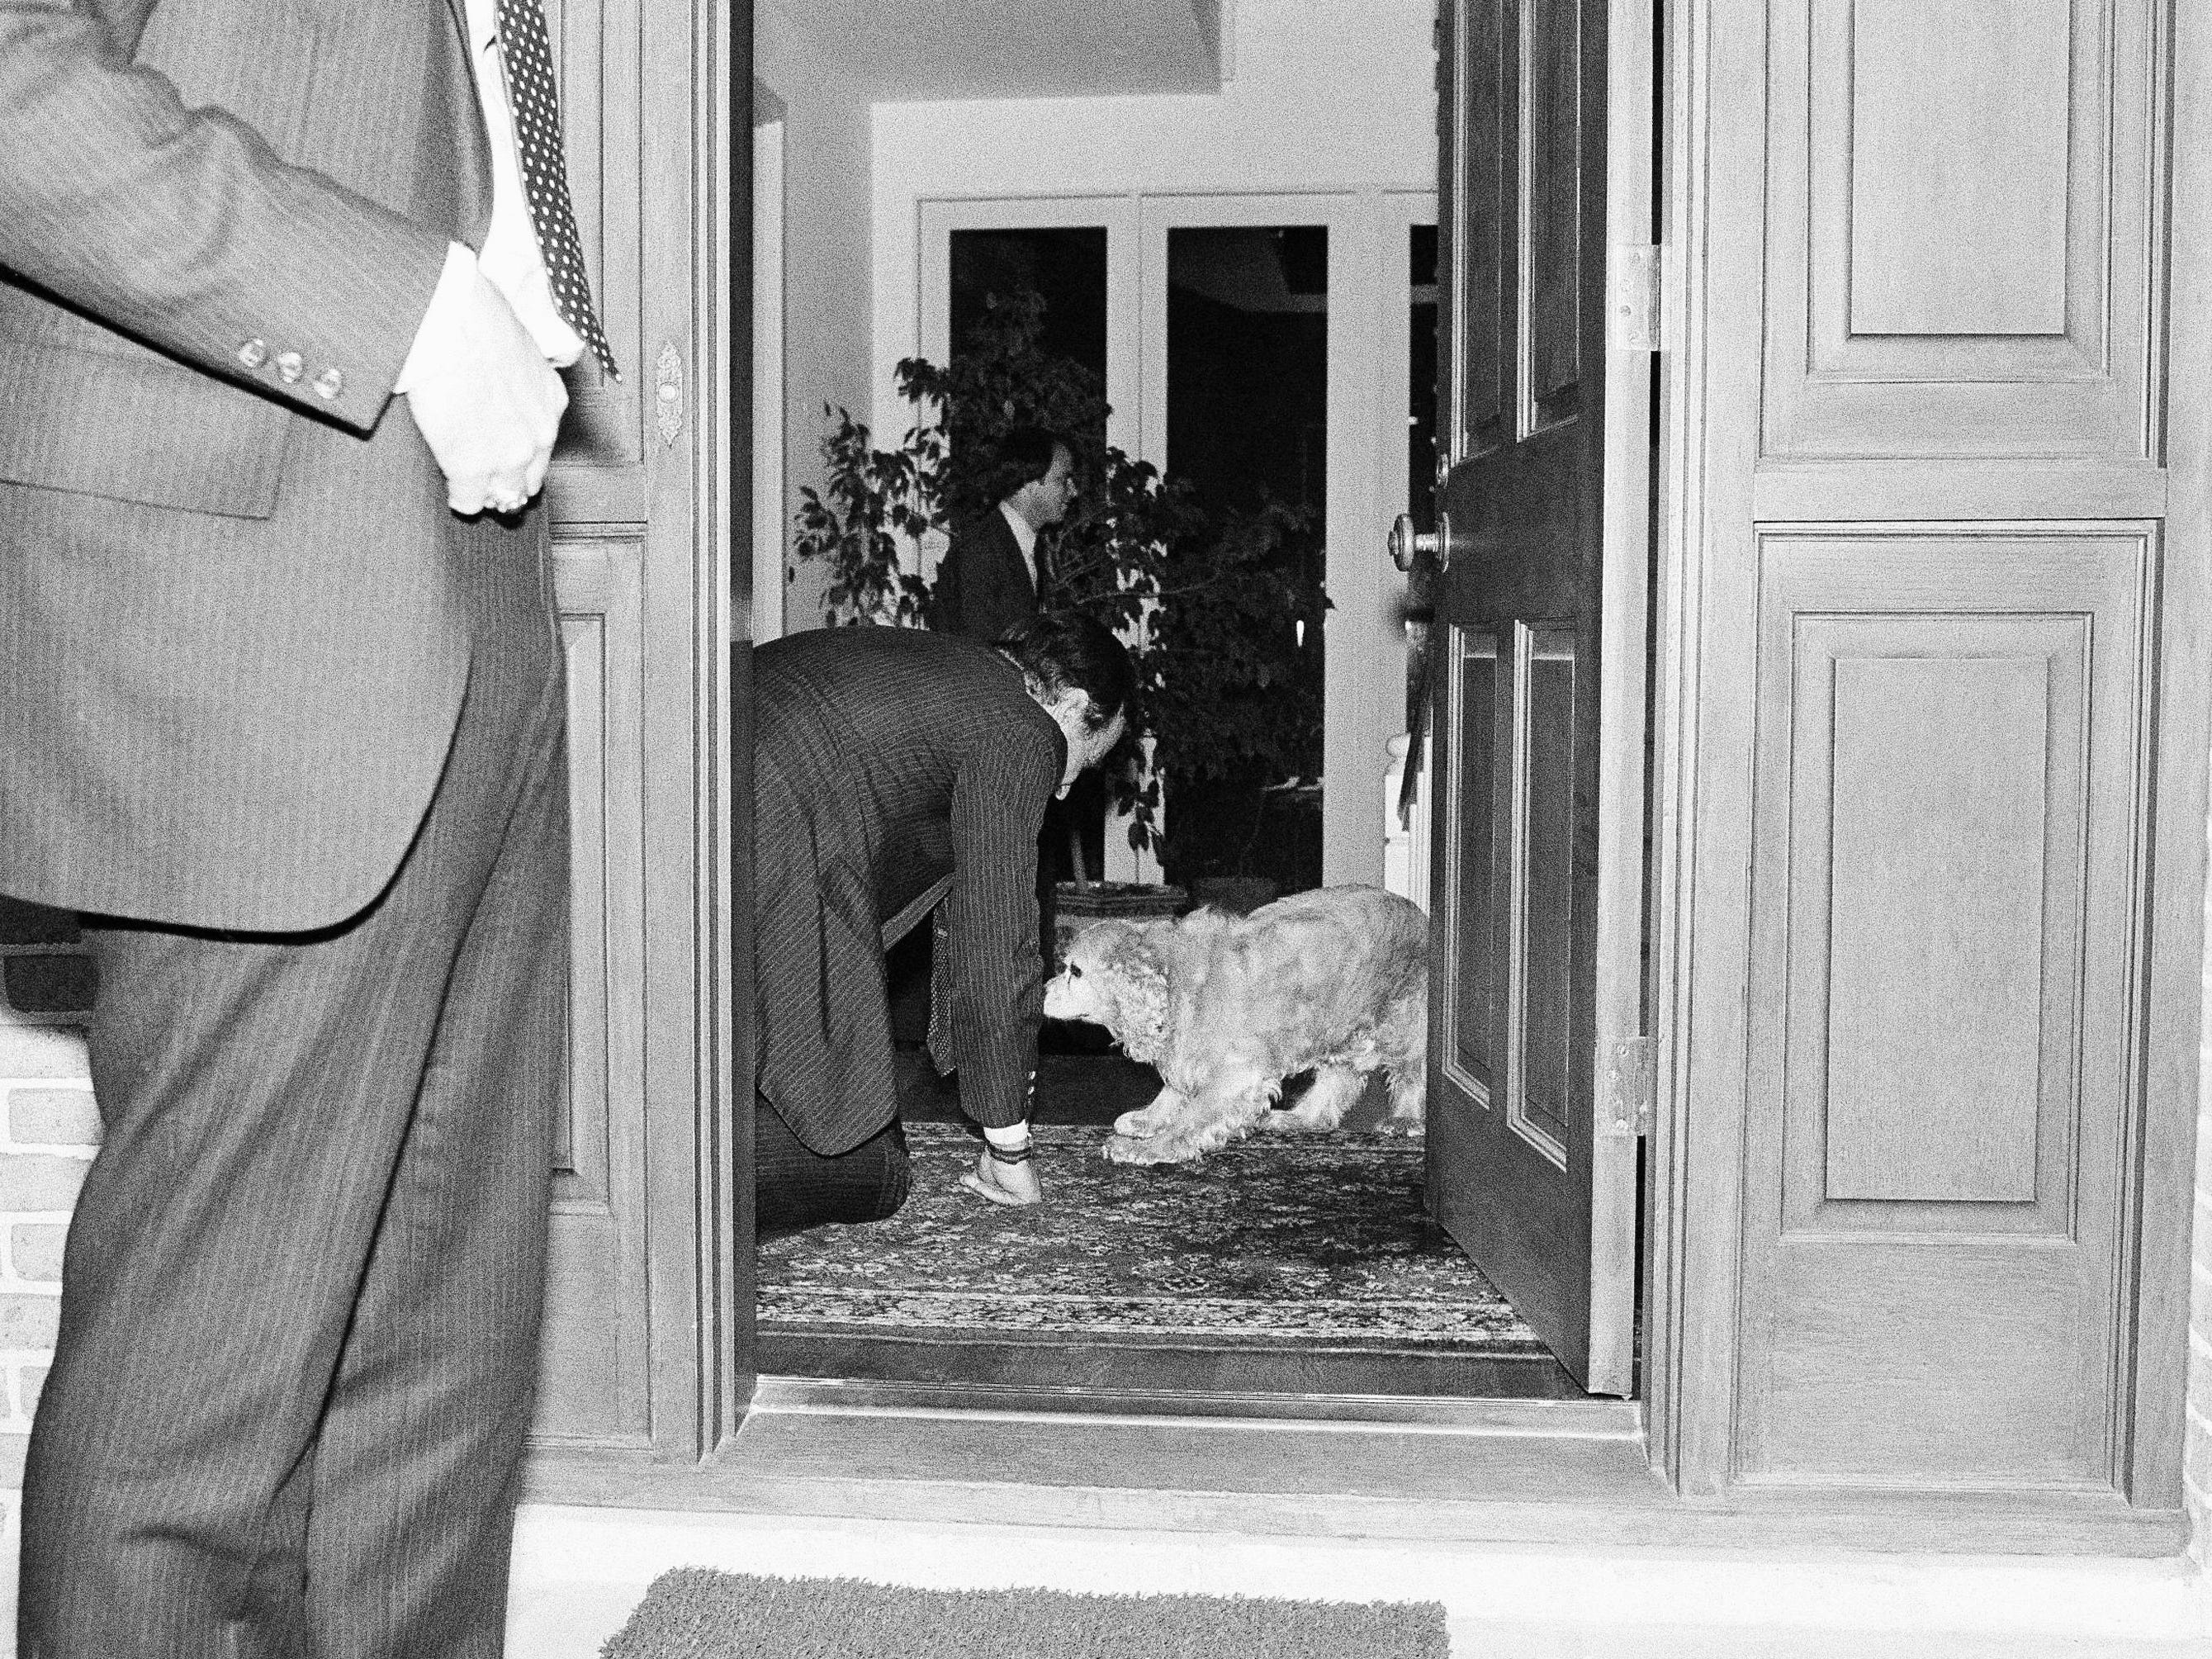 Republican vice presidential candidate George H.W. Bush, on all fours greeting the family dog Freddie, as he arrived at his home, Nov. 3, 1980 in Houston, Texas. Bush returned to Houston to vote in the national election tomorrow and then take returns. (AP Photo/Bill Haber)